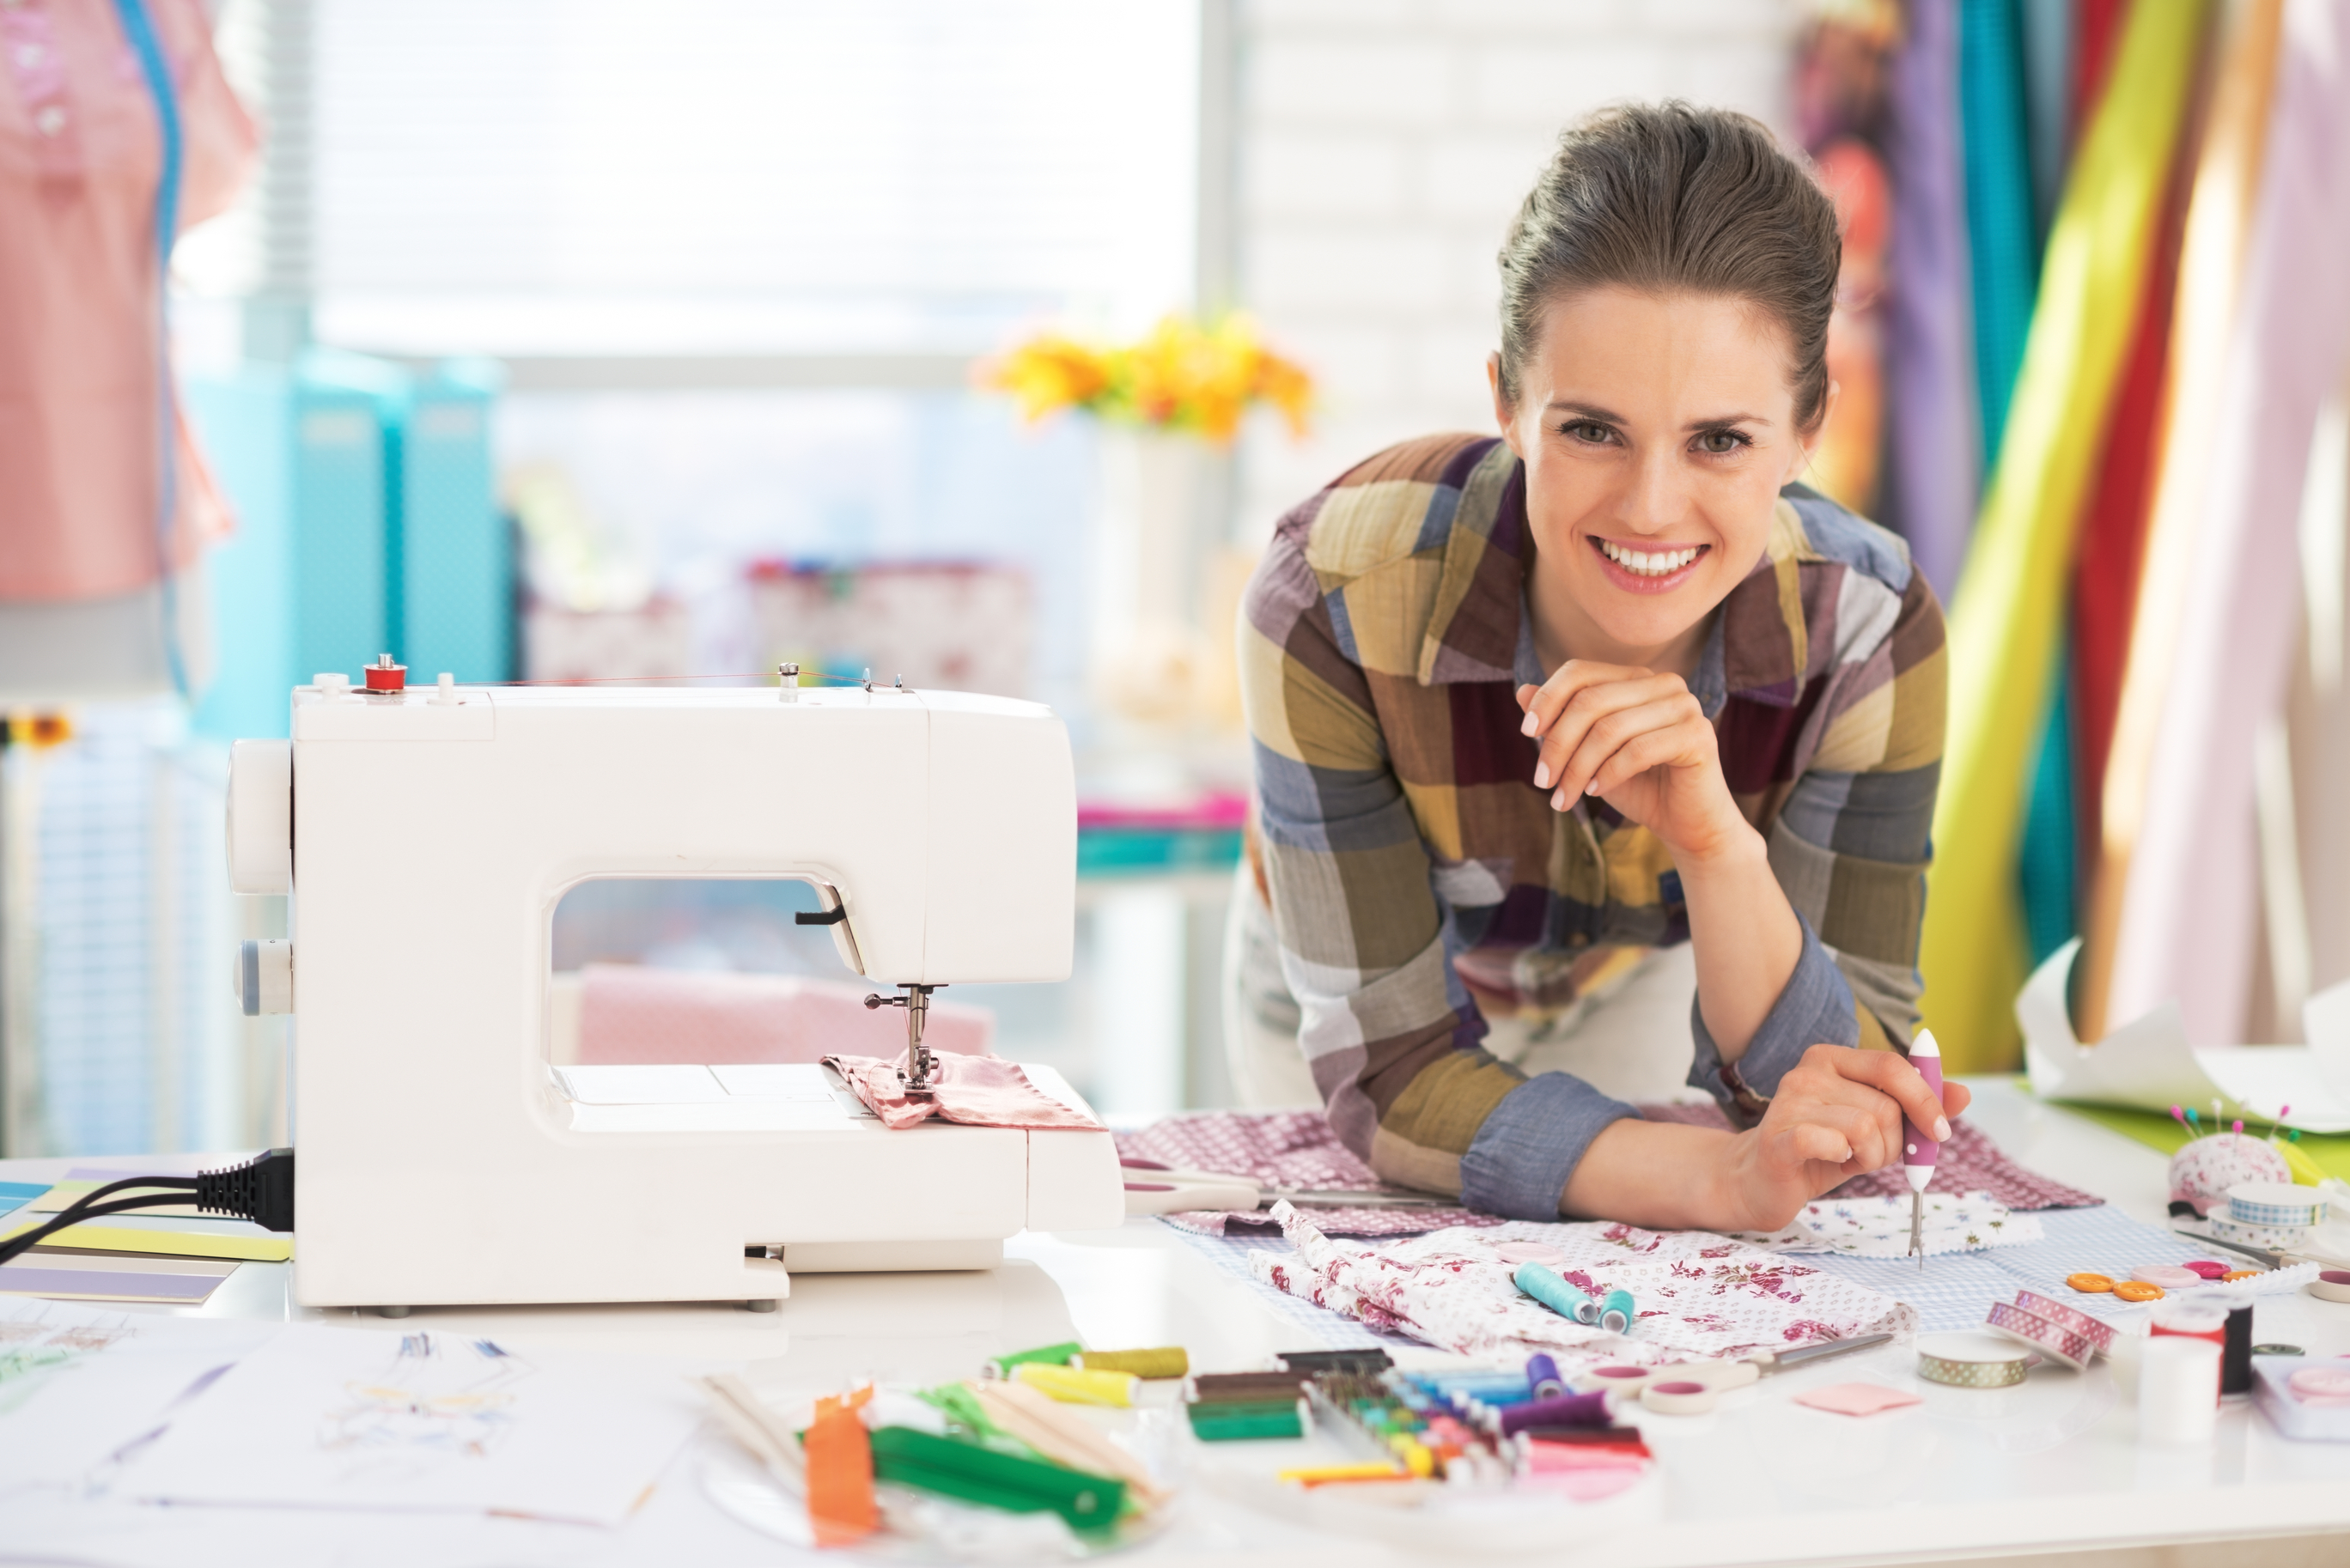 my hobby is sewing Essays - largest database of quality sample essays and research papers on my hobby is sewing.